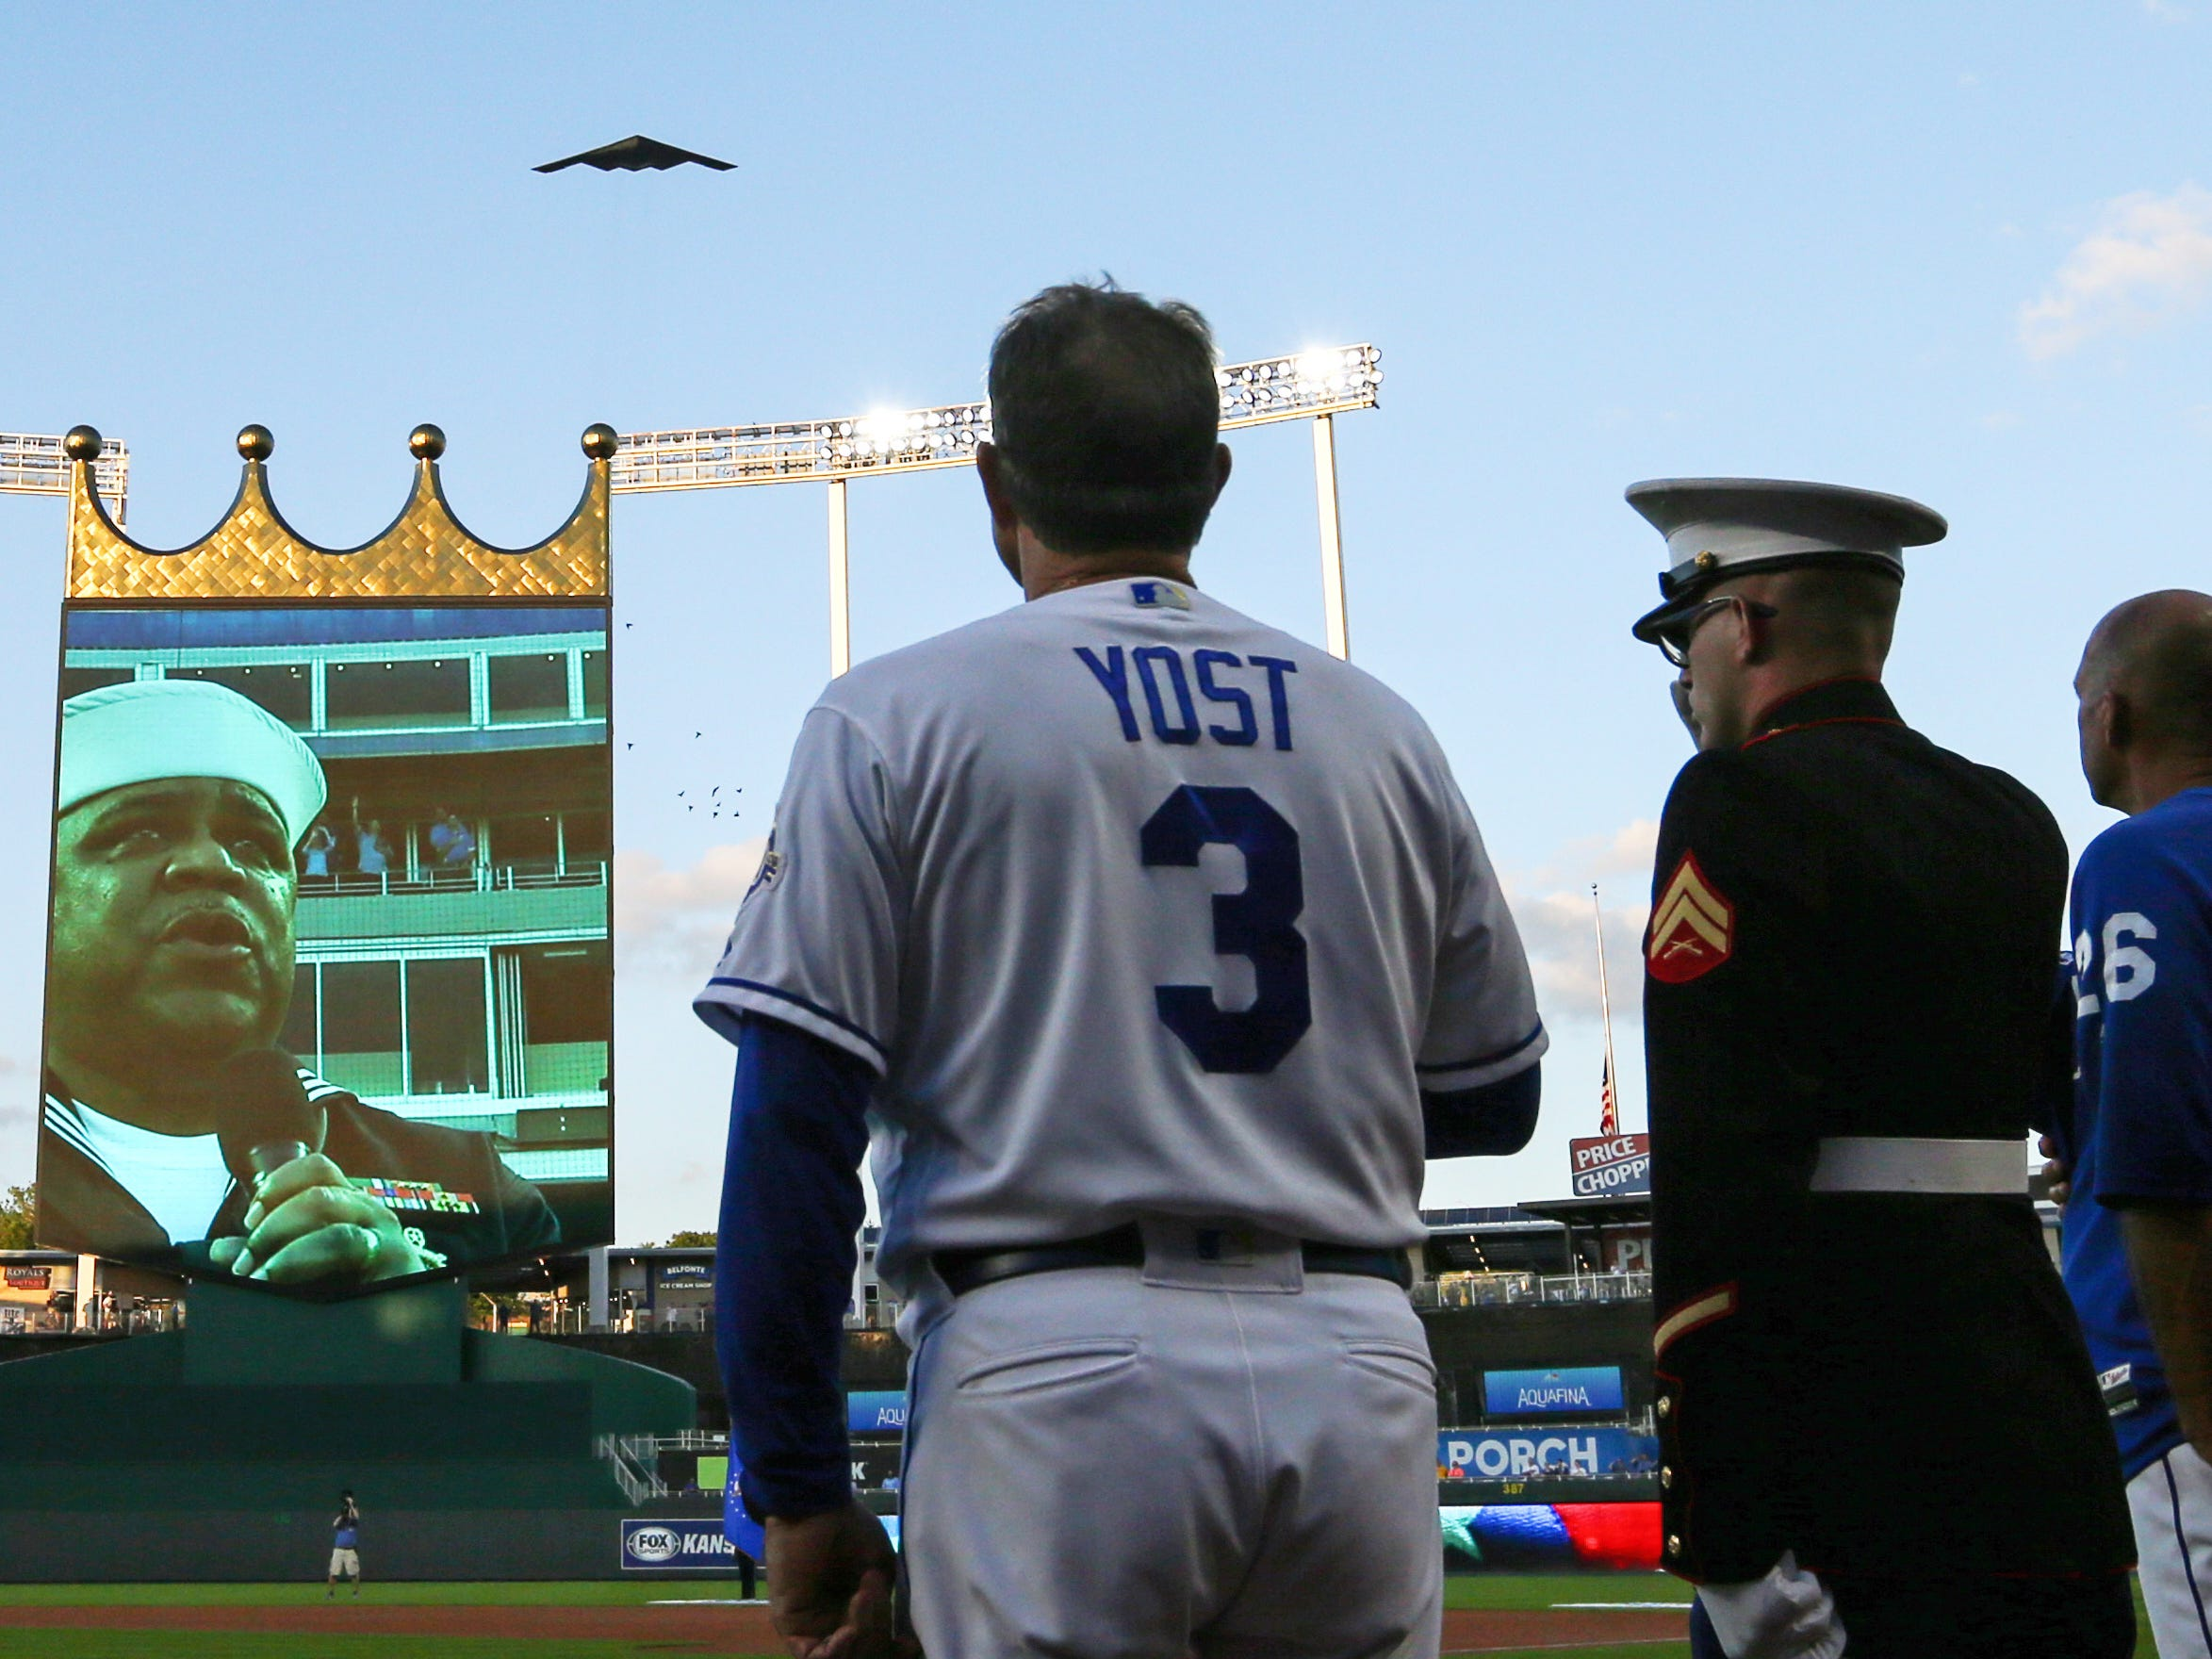 Kansas City Royals manager Ned Yost observes the national anthem alongside service members as a B-2 bomber flies over to honor those lost in the attacks of September 11, 2001.